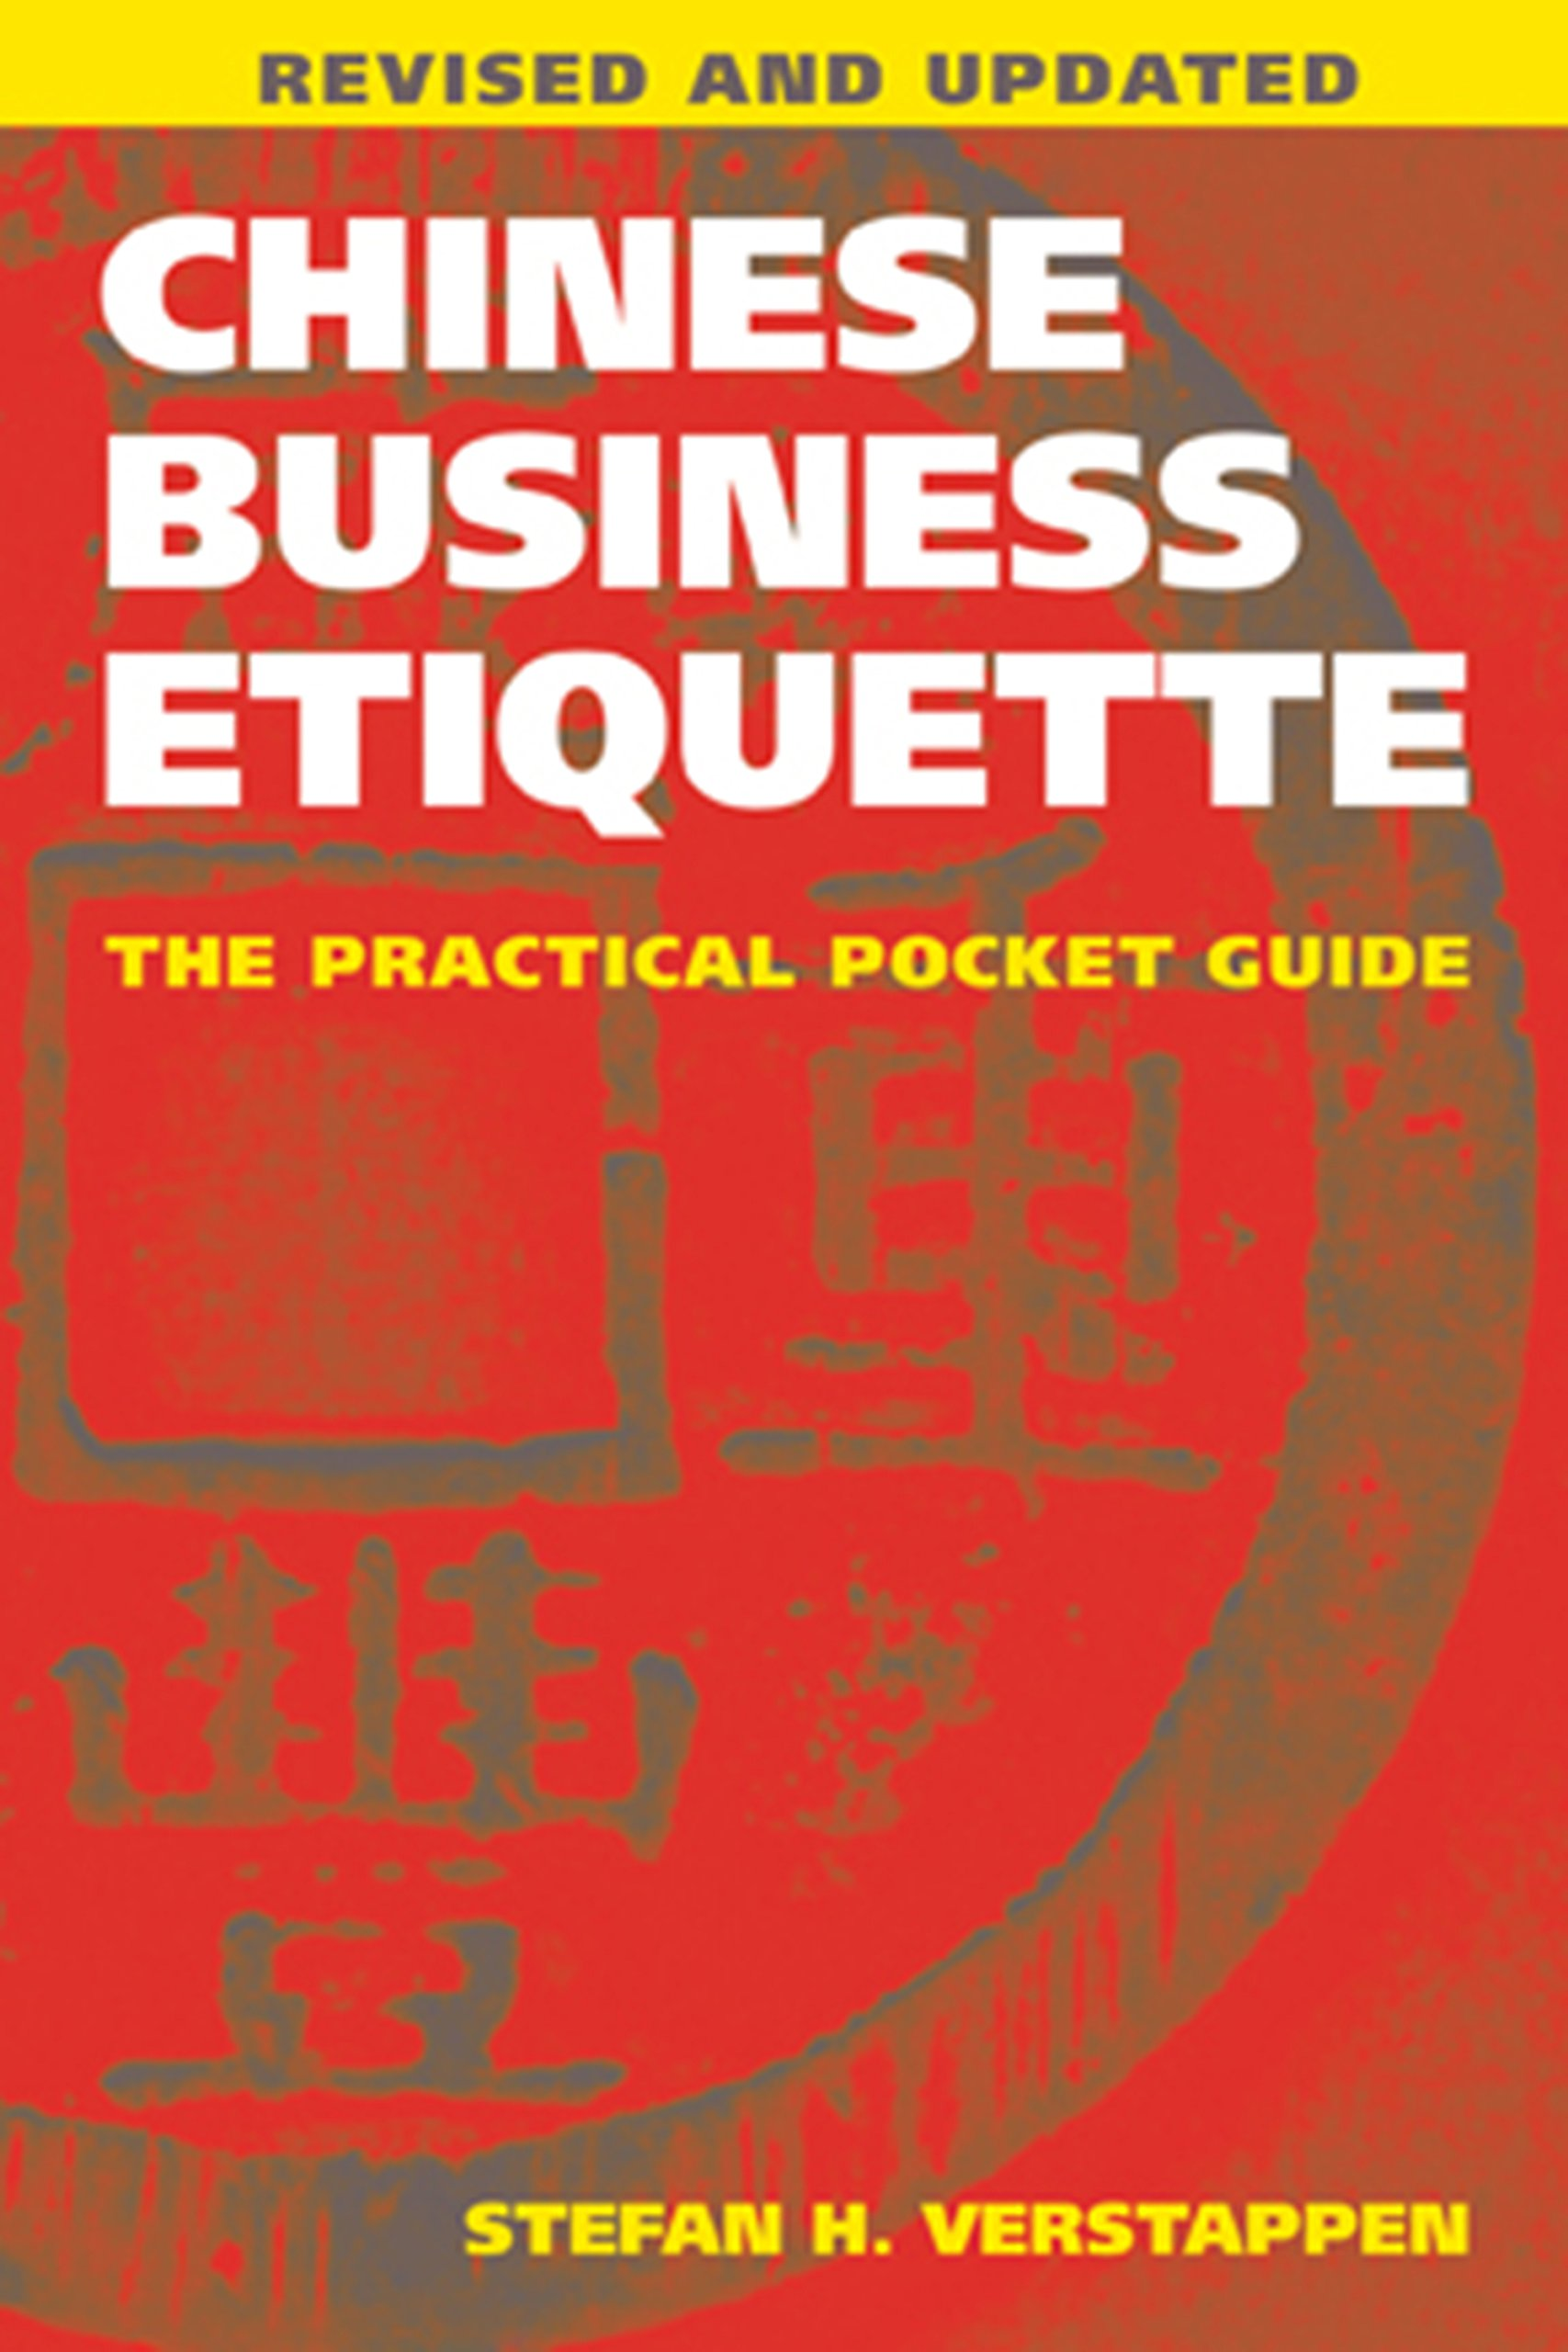 Chinese Business Etiquette: The Practical Pocket Guide, Revised and Updated pdf epub